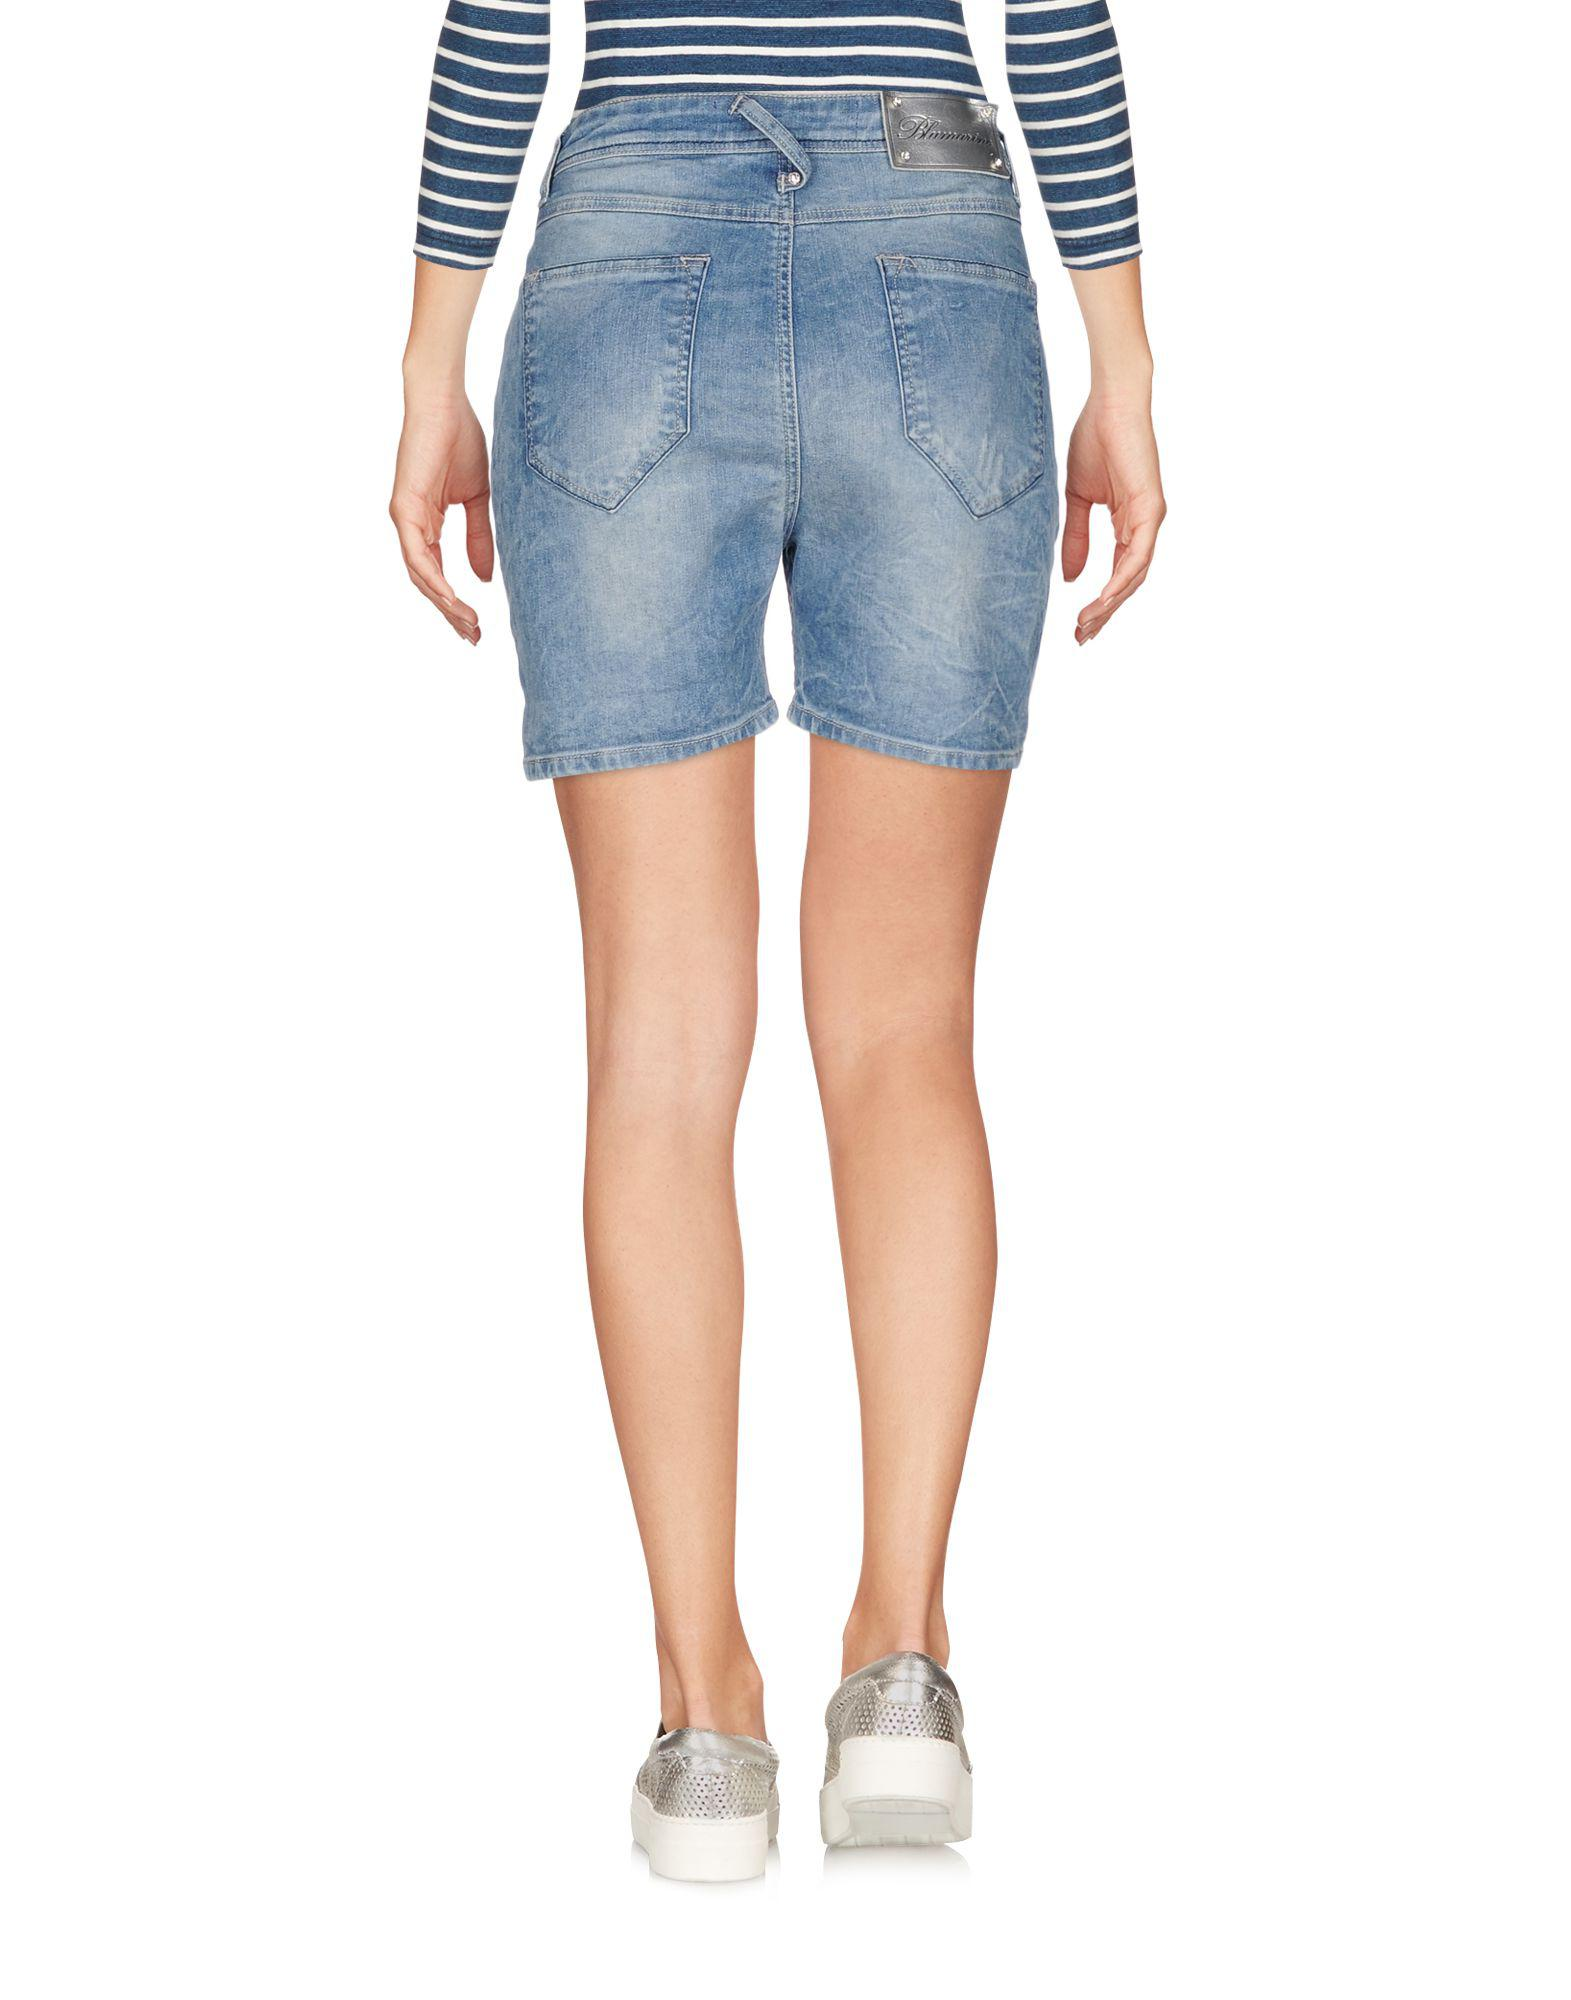 DENIM - Denim bermudas Blumarine Clearance Collections Pay With Visa Cheap Price Visit New Cheap Online New Arrival Cheap Online cpuYMG